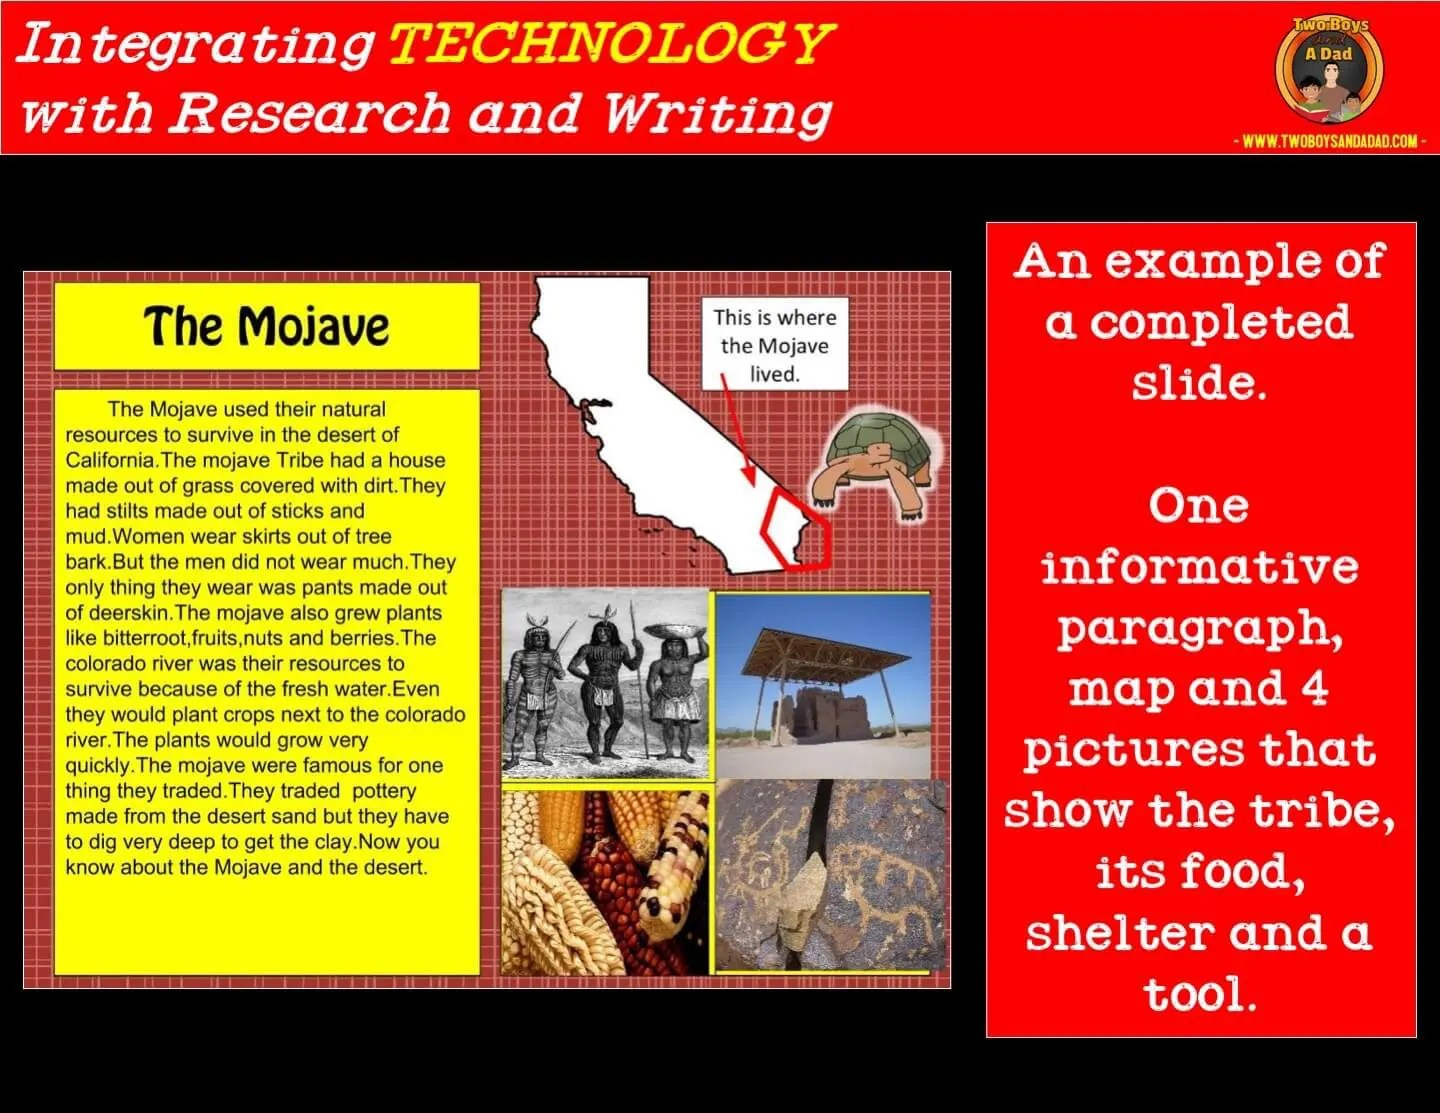 sample slide for a research project integrating technology